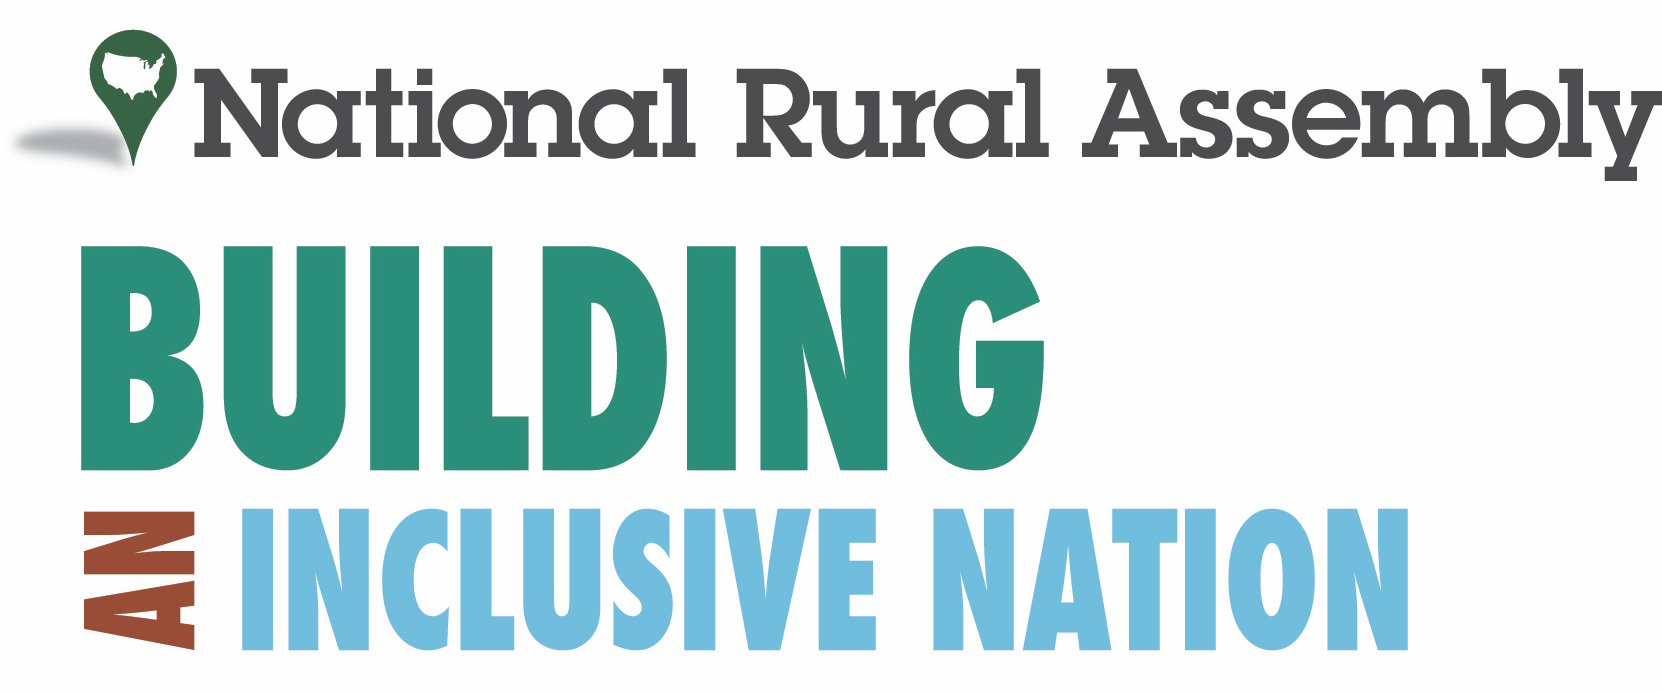 2013 National Rural Assembly Logo